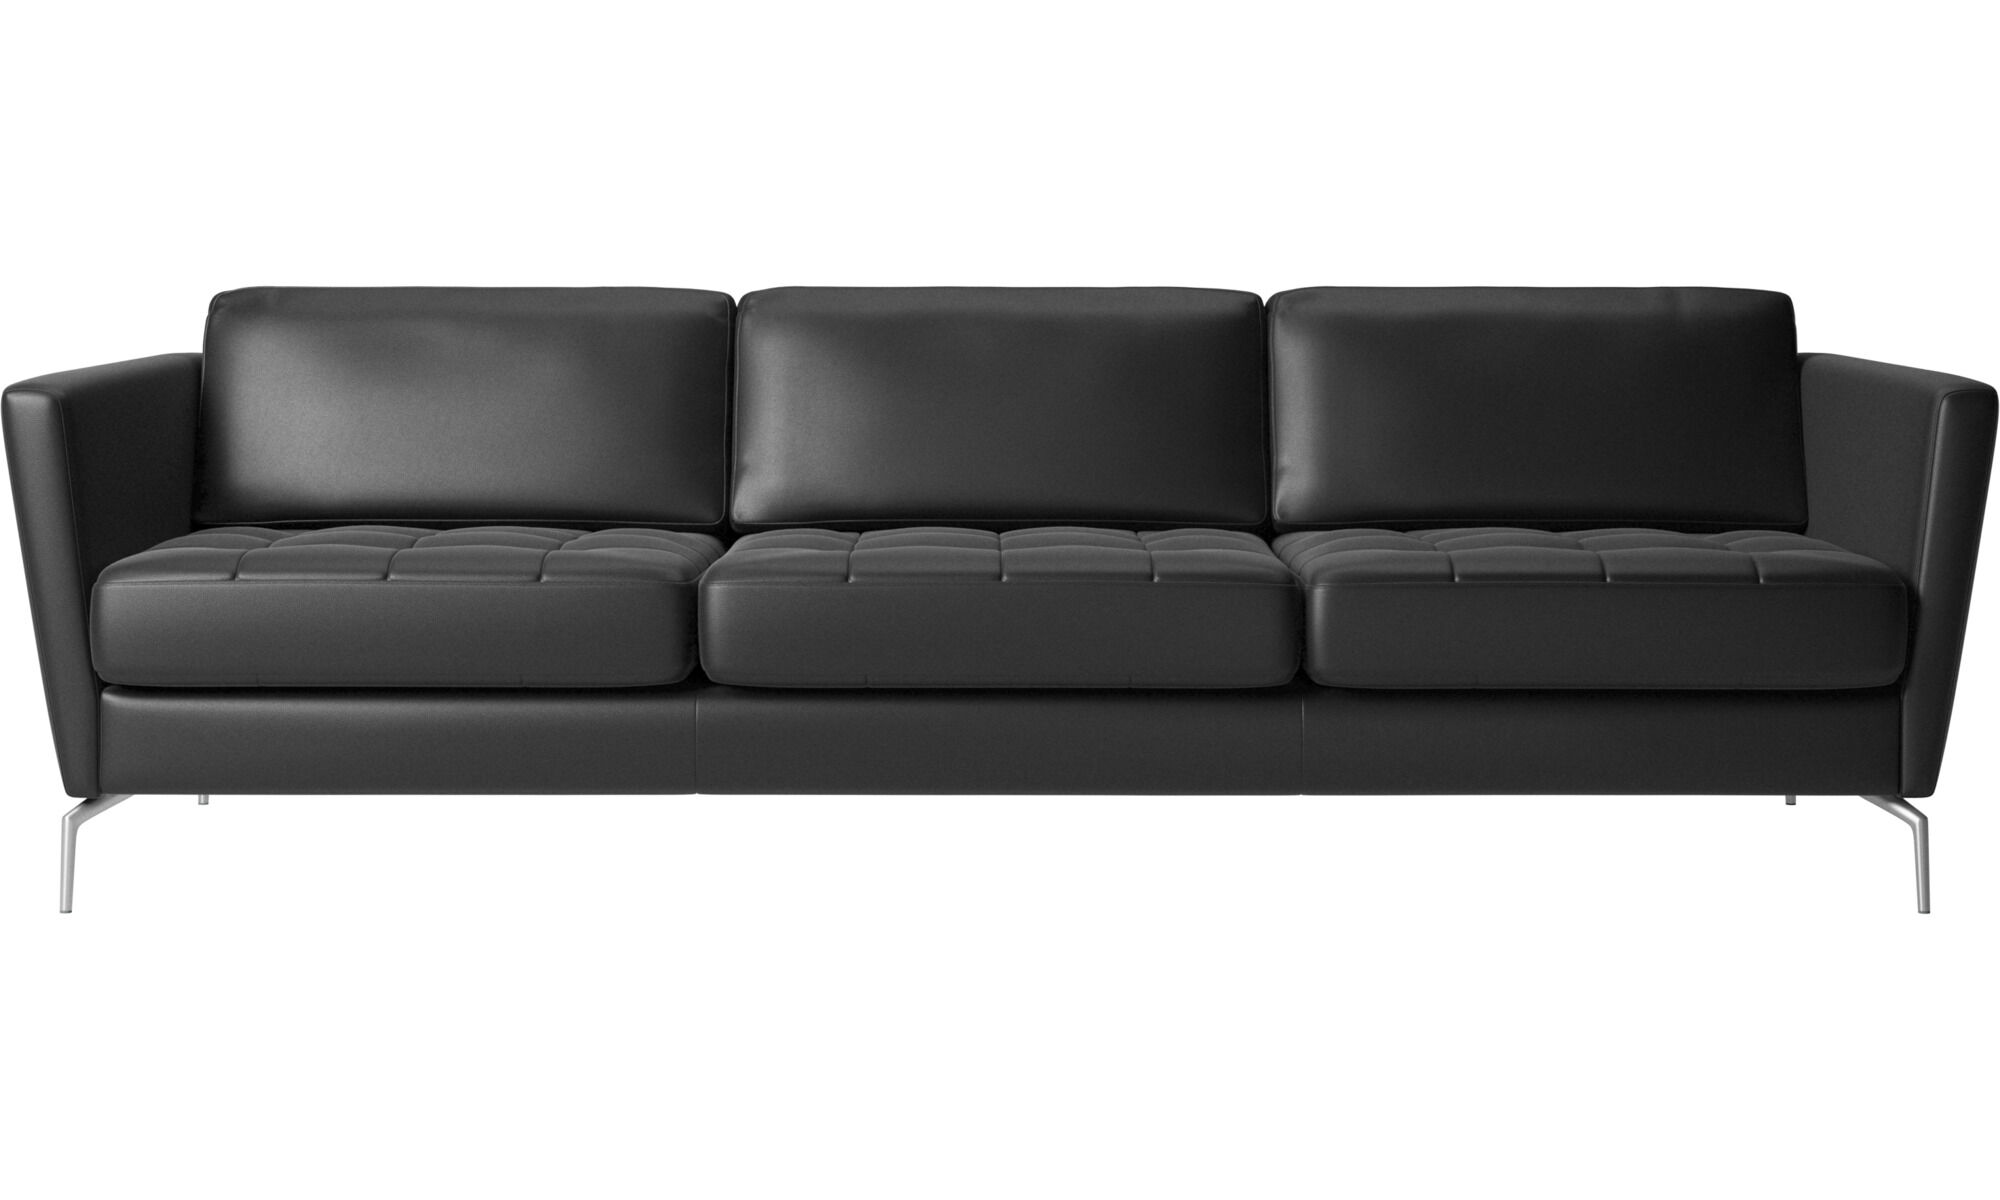 Dahlia 3 Seat Leather Sofa Leather Sofas Contemporary Sofa Design From Boconcept